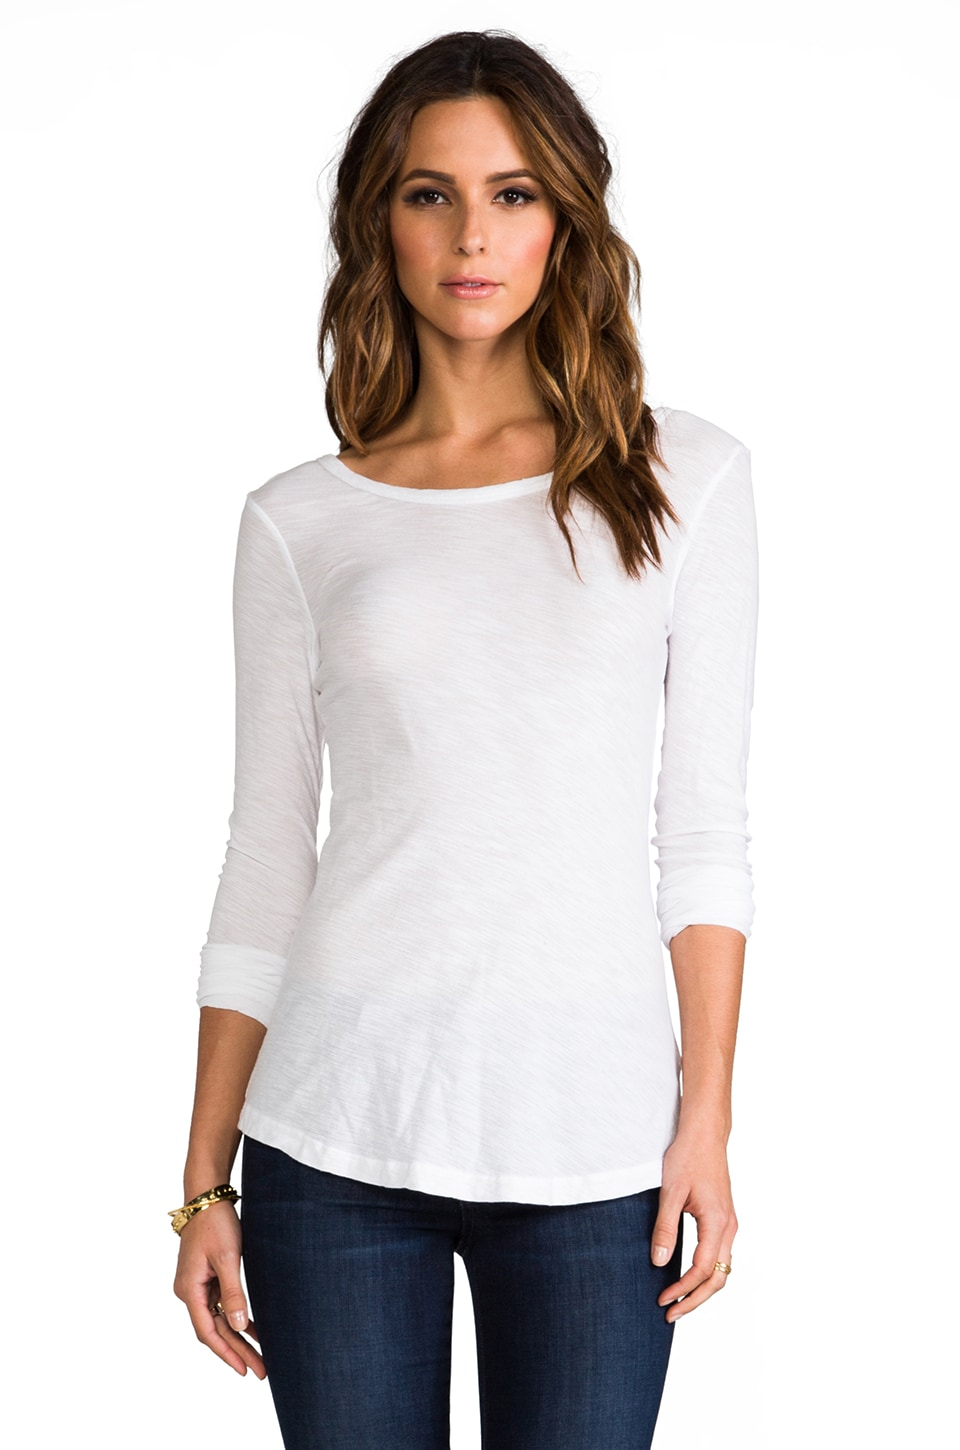 James Perse Sheer Slub Long Sleeve Tee in White